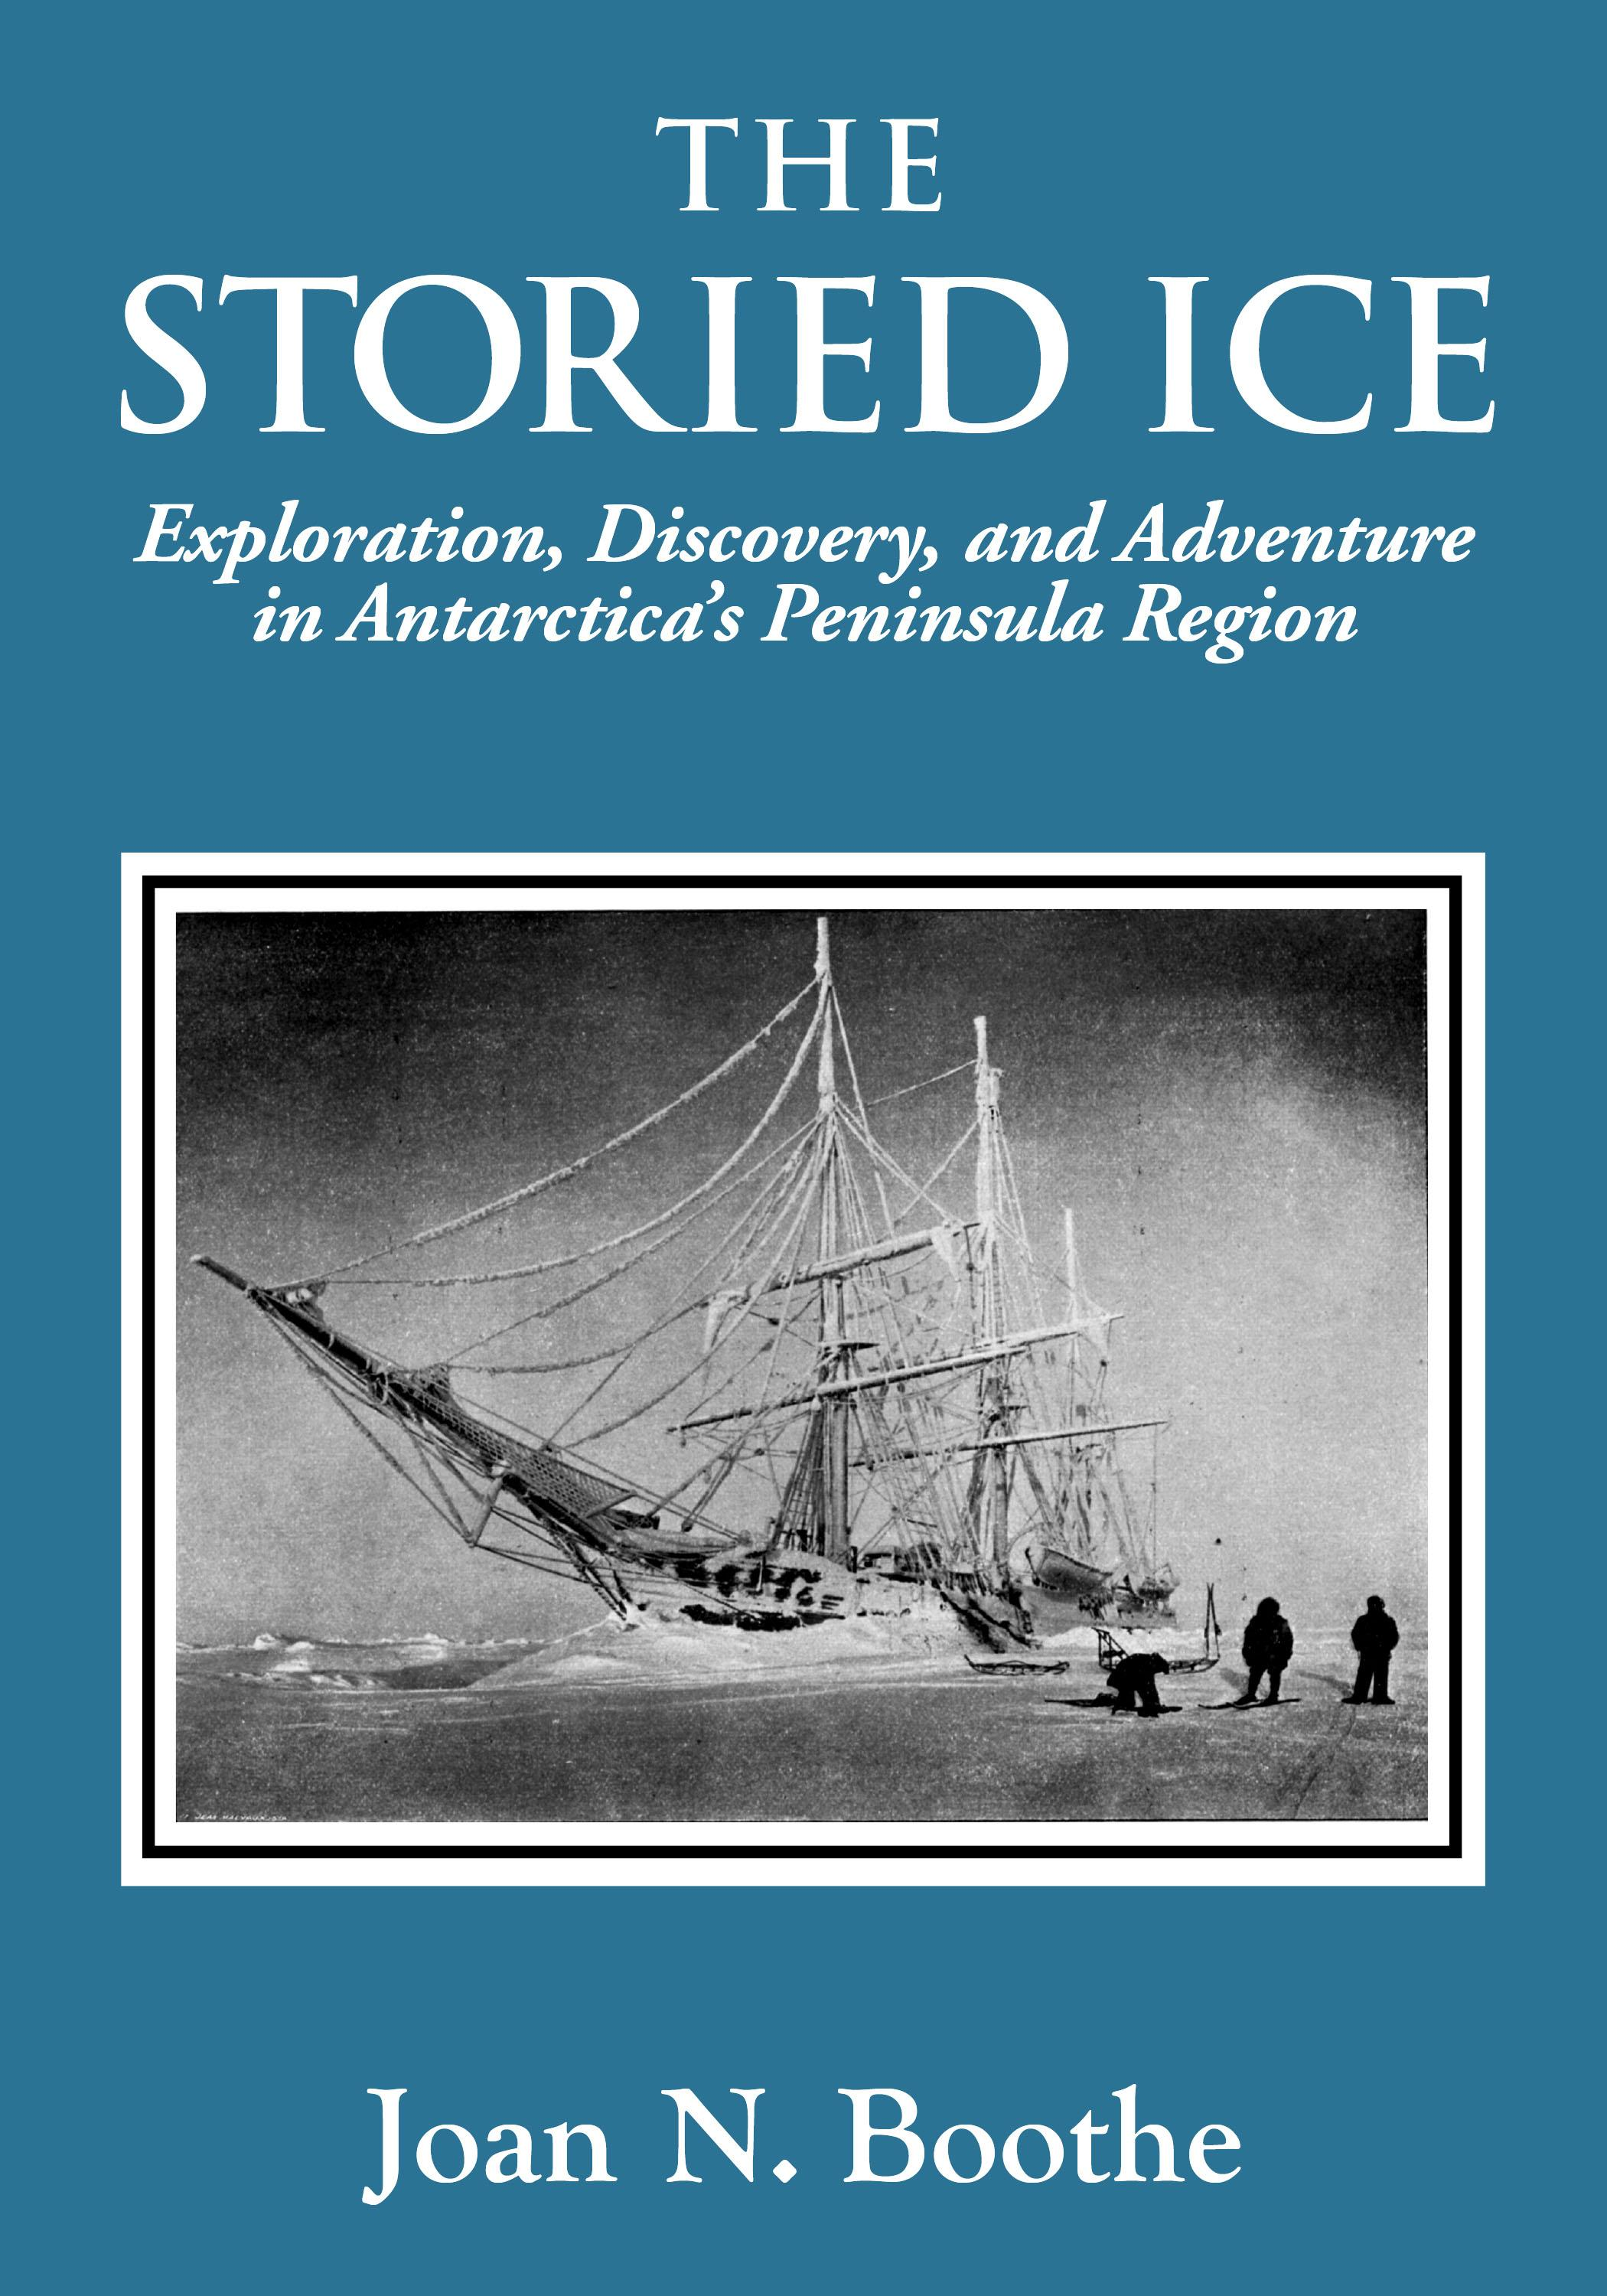 THE STORIED ICE Exploration, Discovery, and Adventure in Antarctica's Peninsula Region EB9781587901812